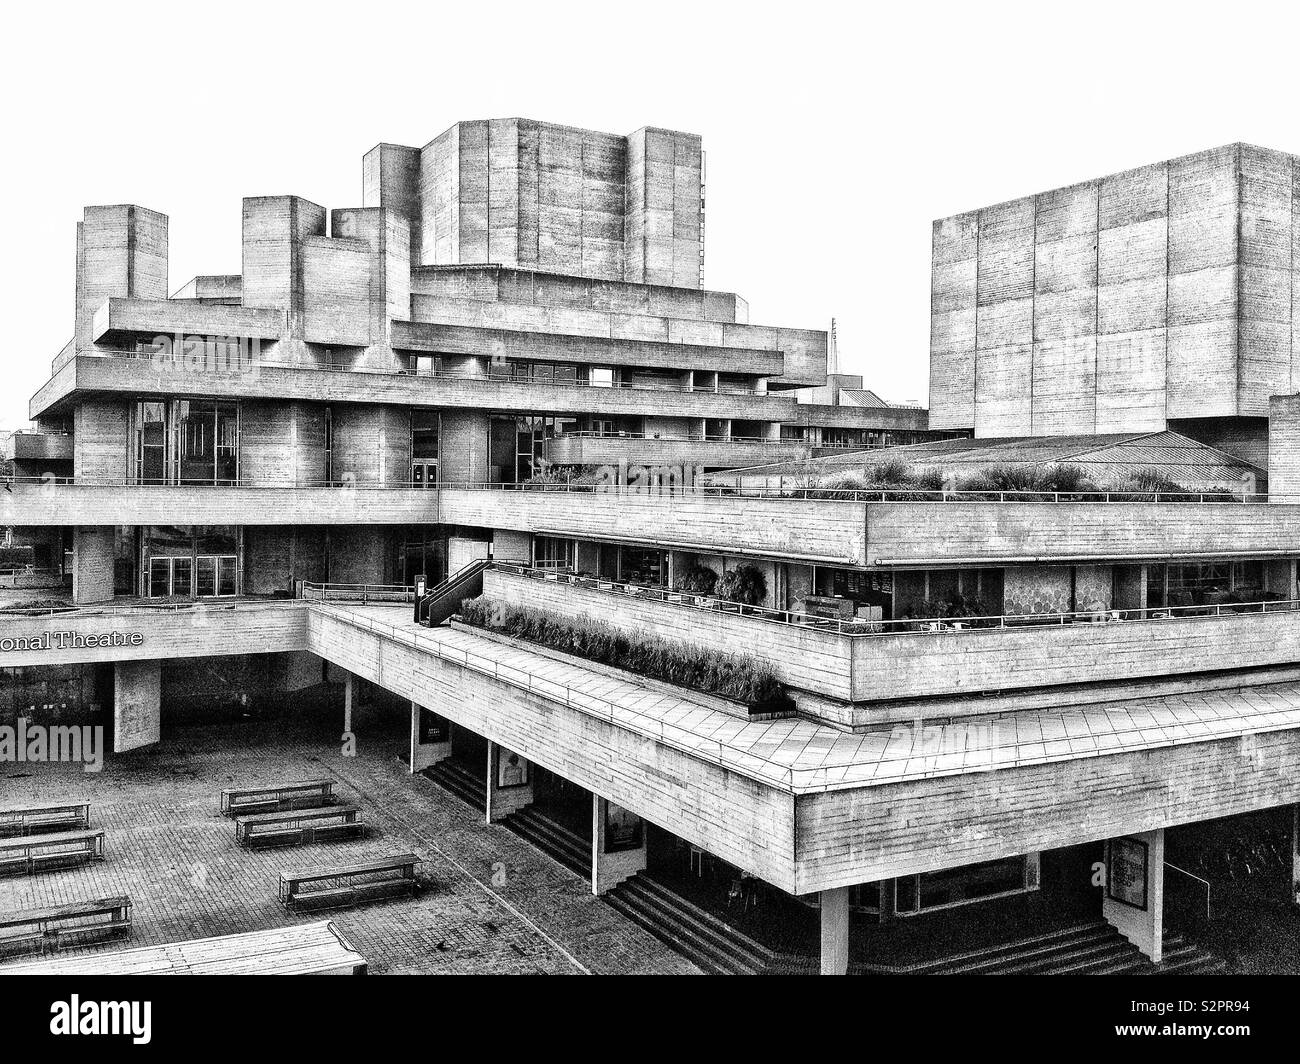 The Brutalist architecture of the National Theatre on the Southbank of the river Thames in London, England. - Stock Image